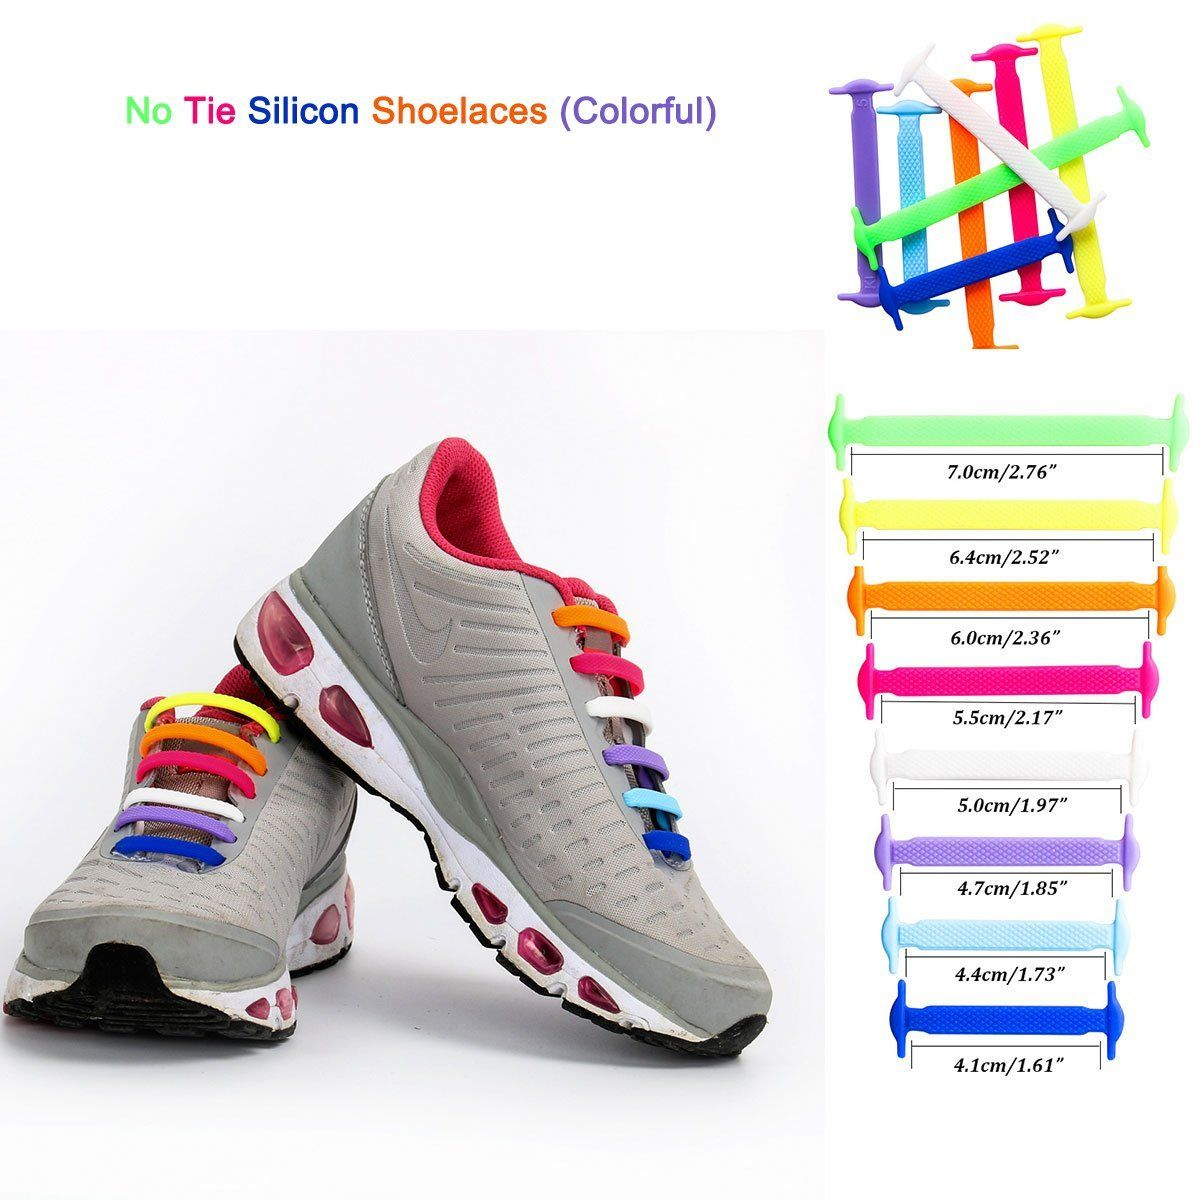 Cusfull Lazy No Tie Shoelaces for Adults Waterproof Flat Silicon Shoelaces Multicolor Shoelaces16 Pcs/pair